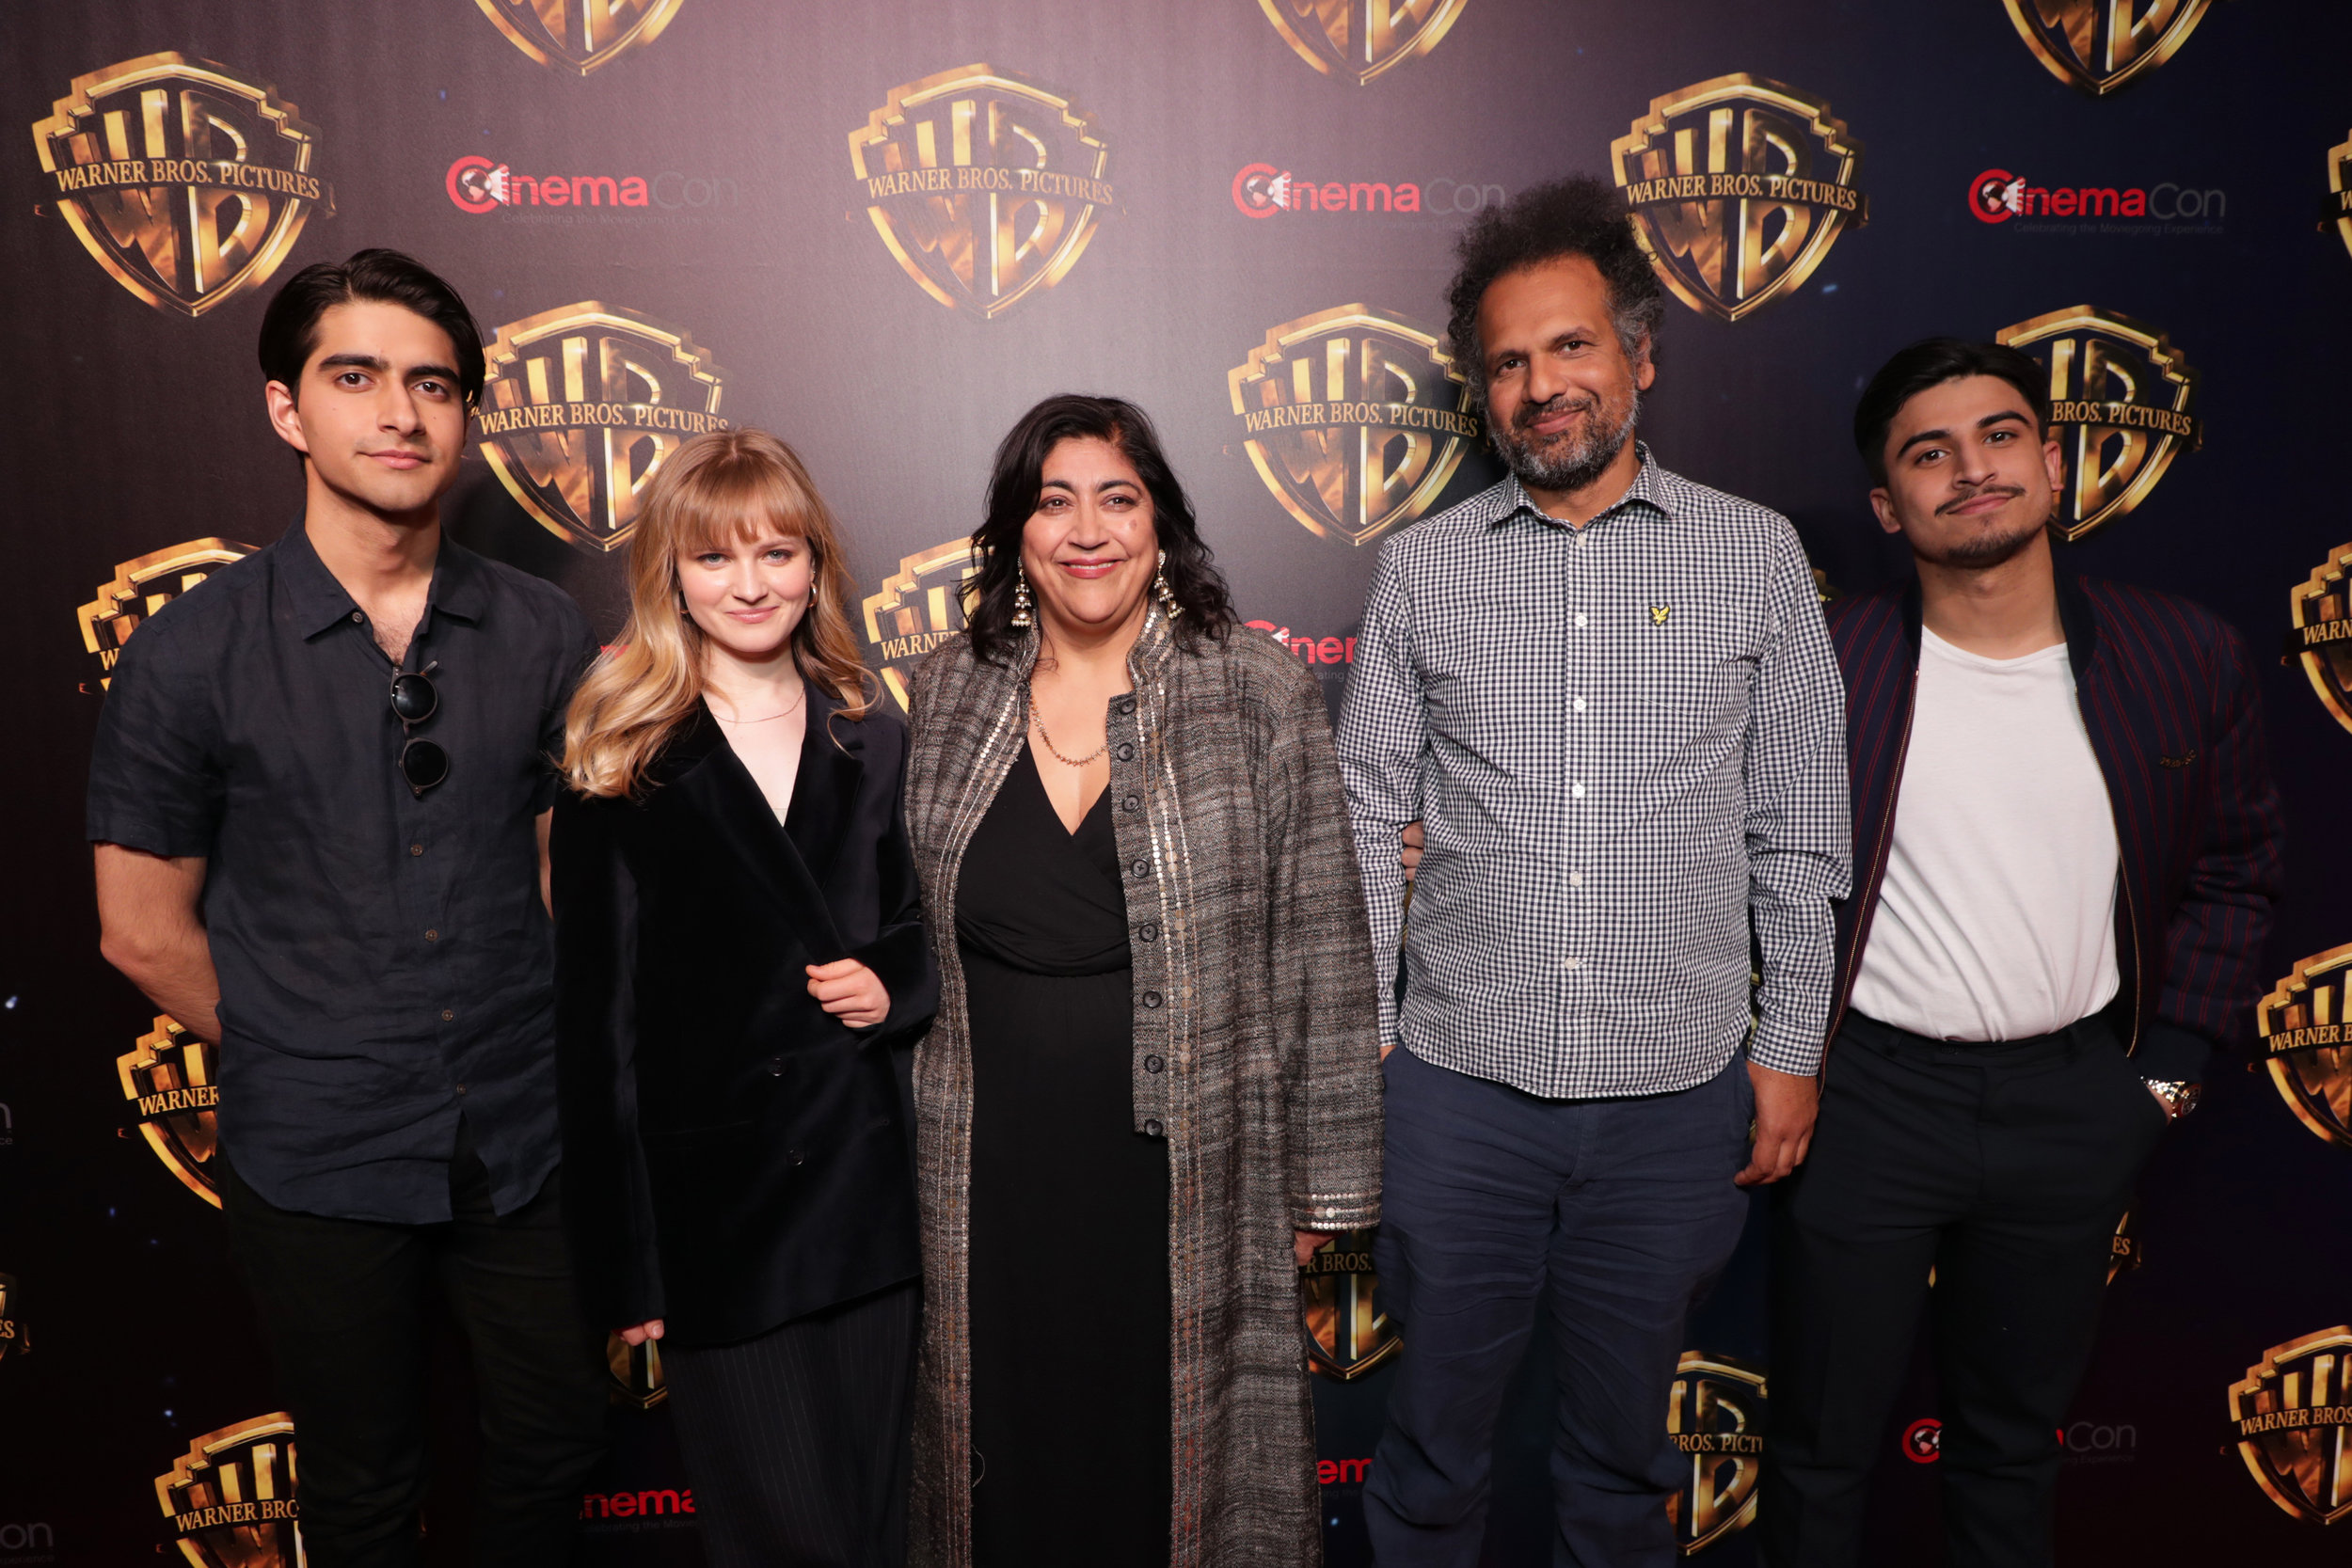 Copyright: © 2019 WARNER BROS. ENTERTAINMENT INC / Photo Credit: Dan Steinberg  Aaron Phagura, Nell Williams, Gurinder Chadha, Writer/Director/Producer, Sarfraz Manzoor, Writer, Viveik Kalra / Warner Bros. The Big Picture 2019 at CinemaCon 2019 at The Colosseum at Caesar's Palace, Las Vegas, NV, USA - 2 April 2019